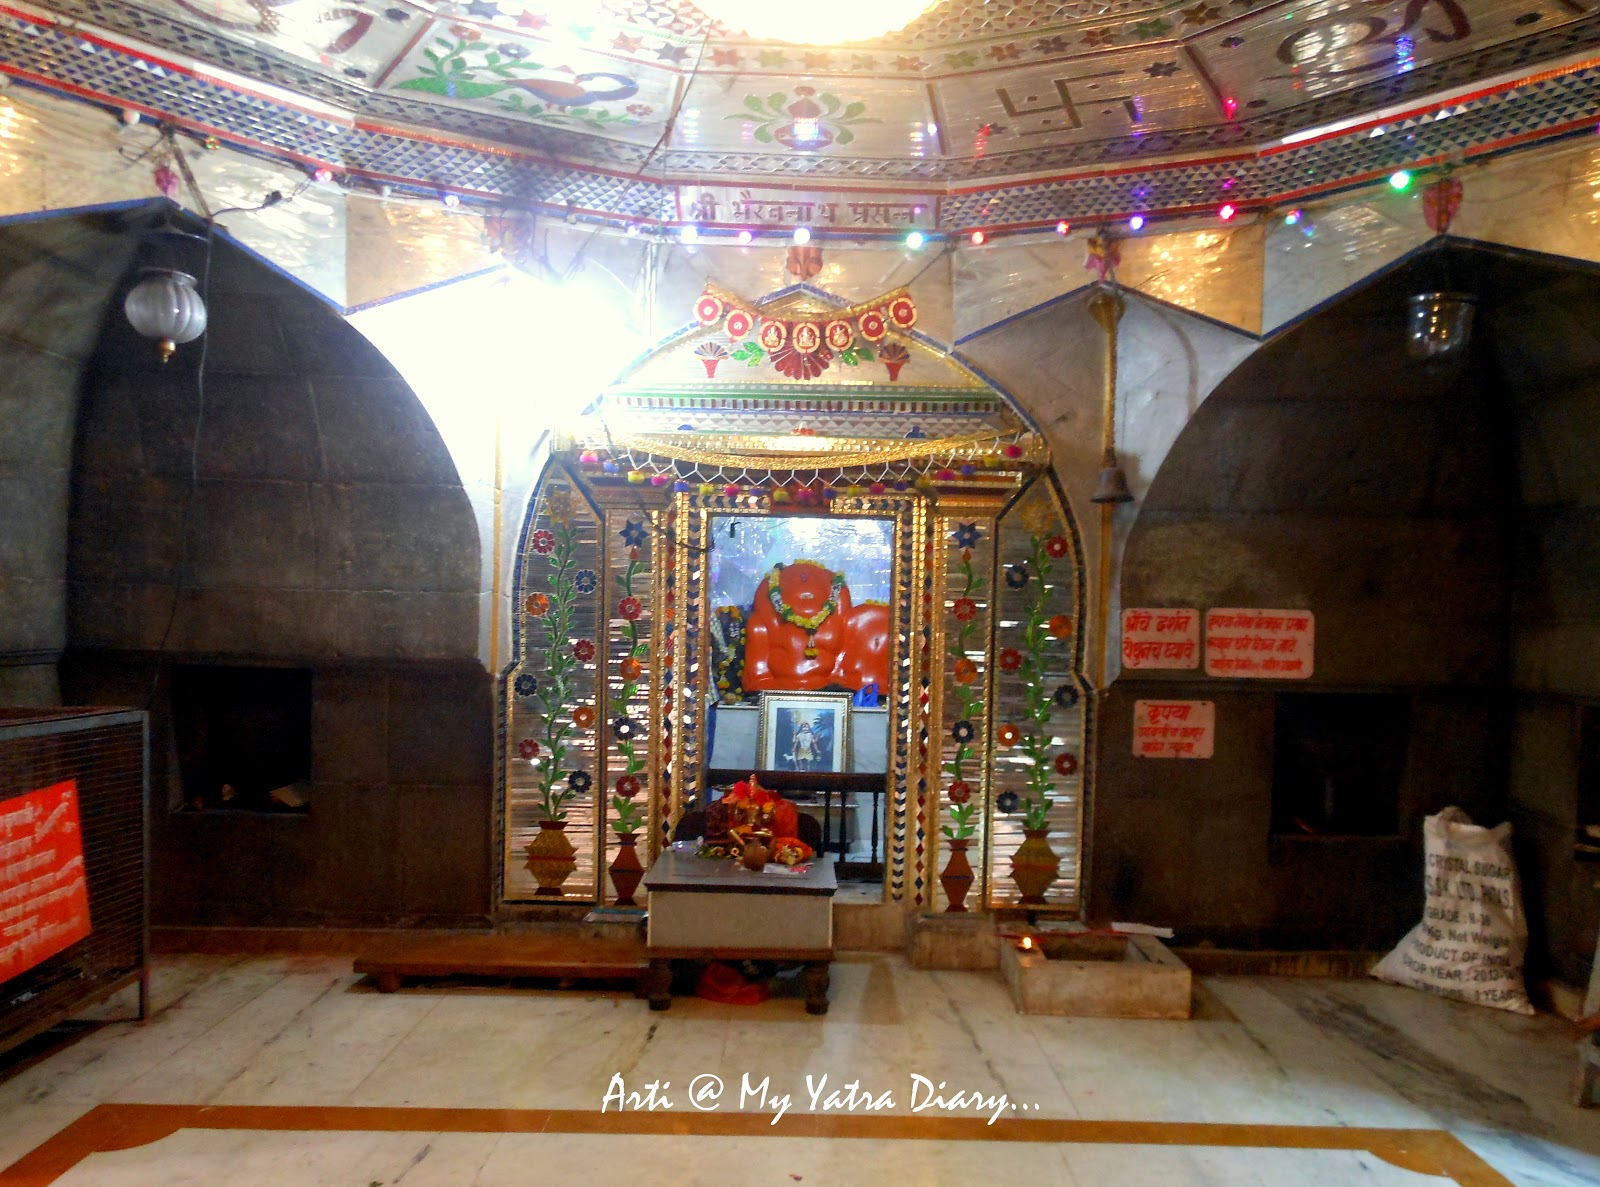 The temple hall of Bhairavnath temple, Saswad, Pune, Maharashtra